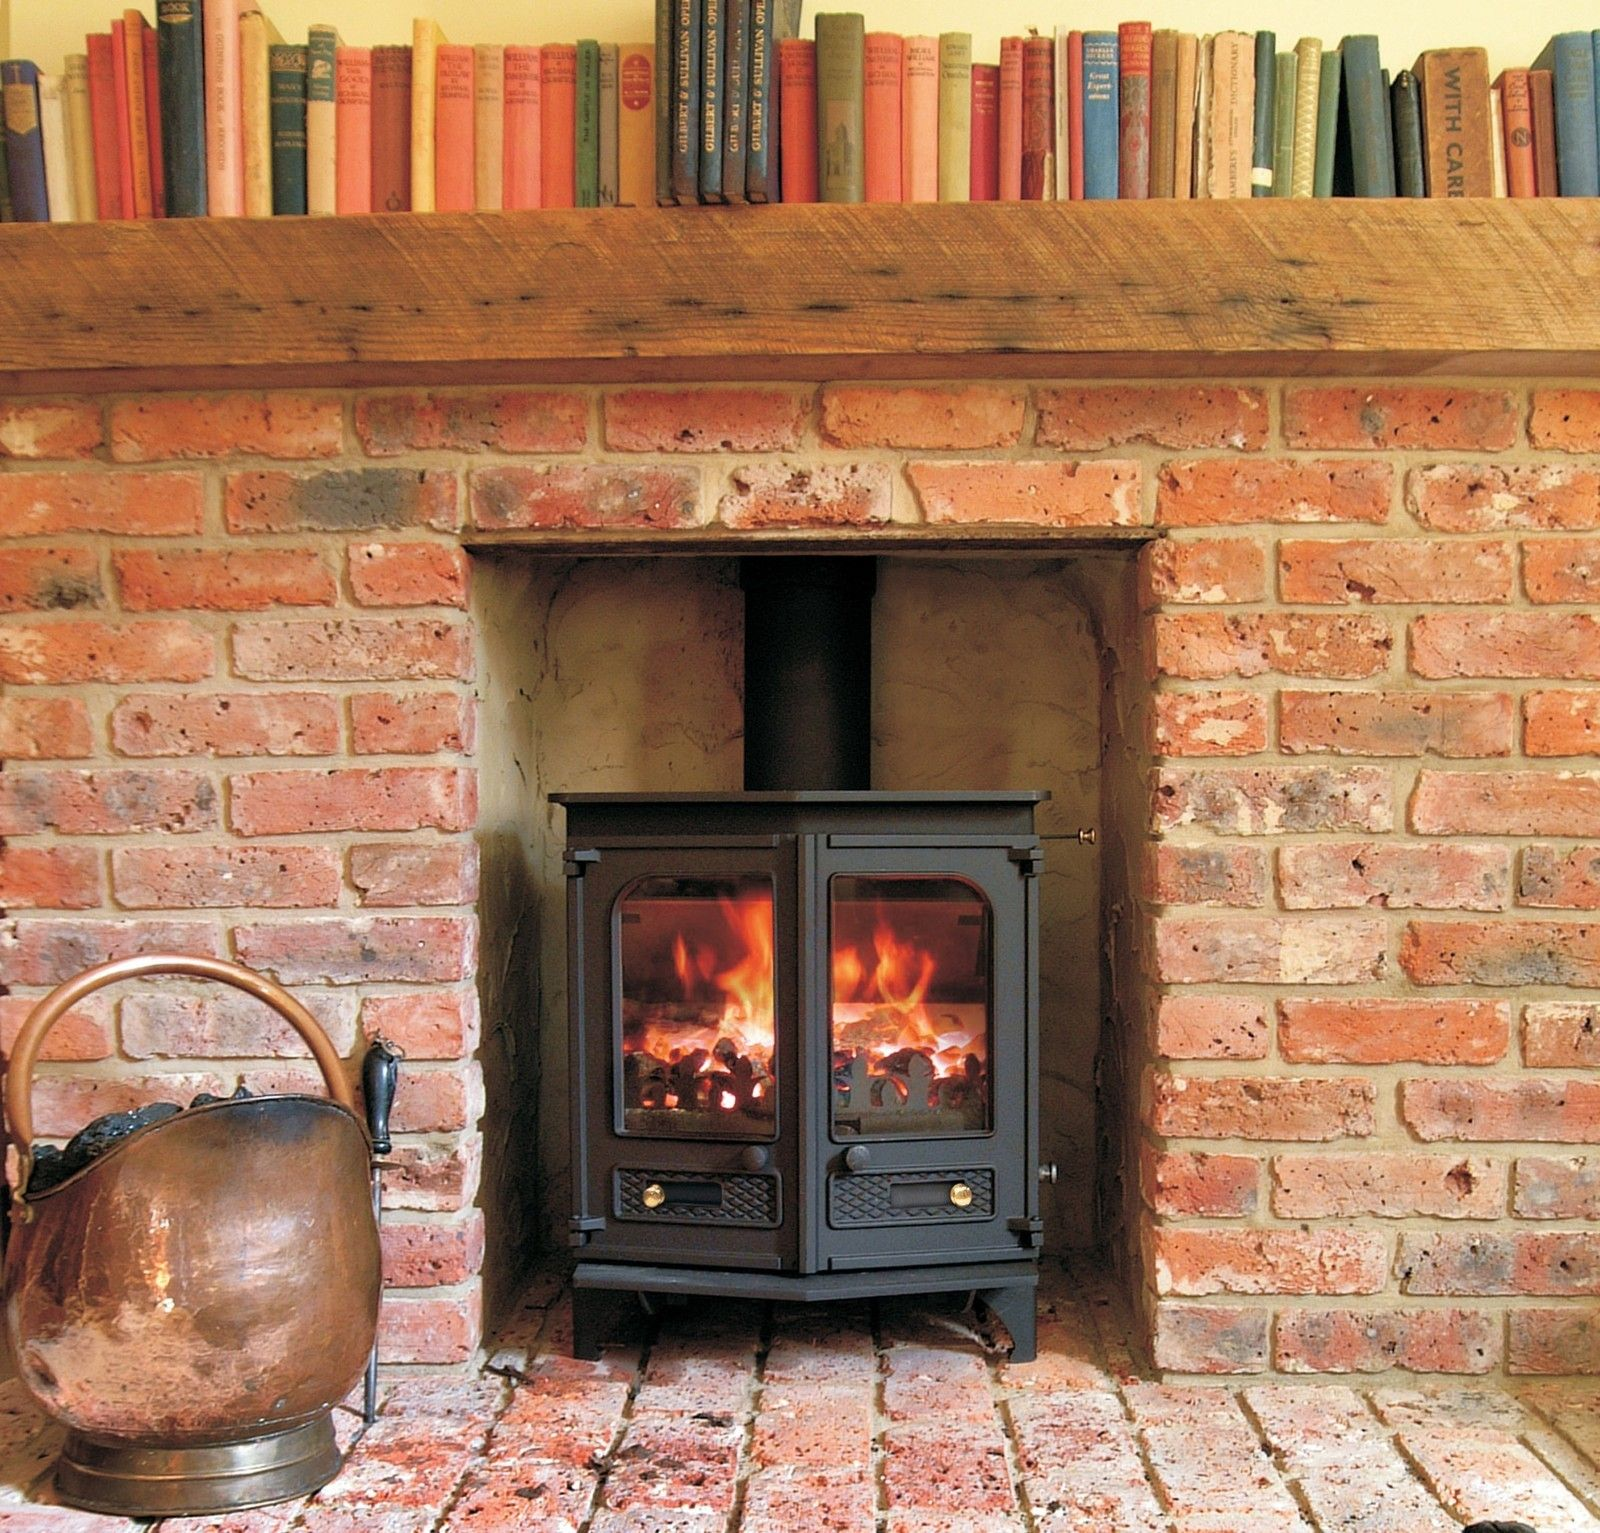 Hearth Designs: Brick Fireplace With Log Burner